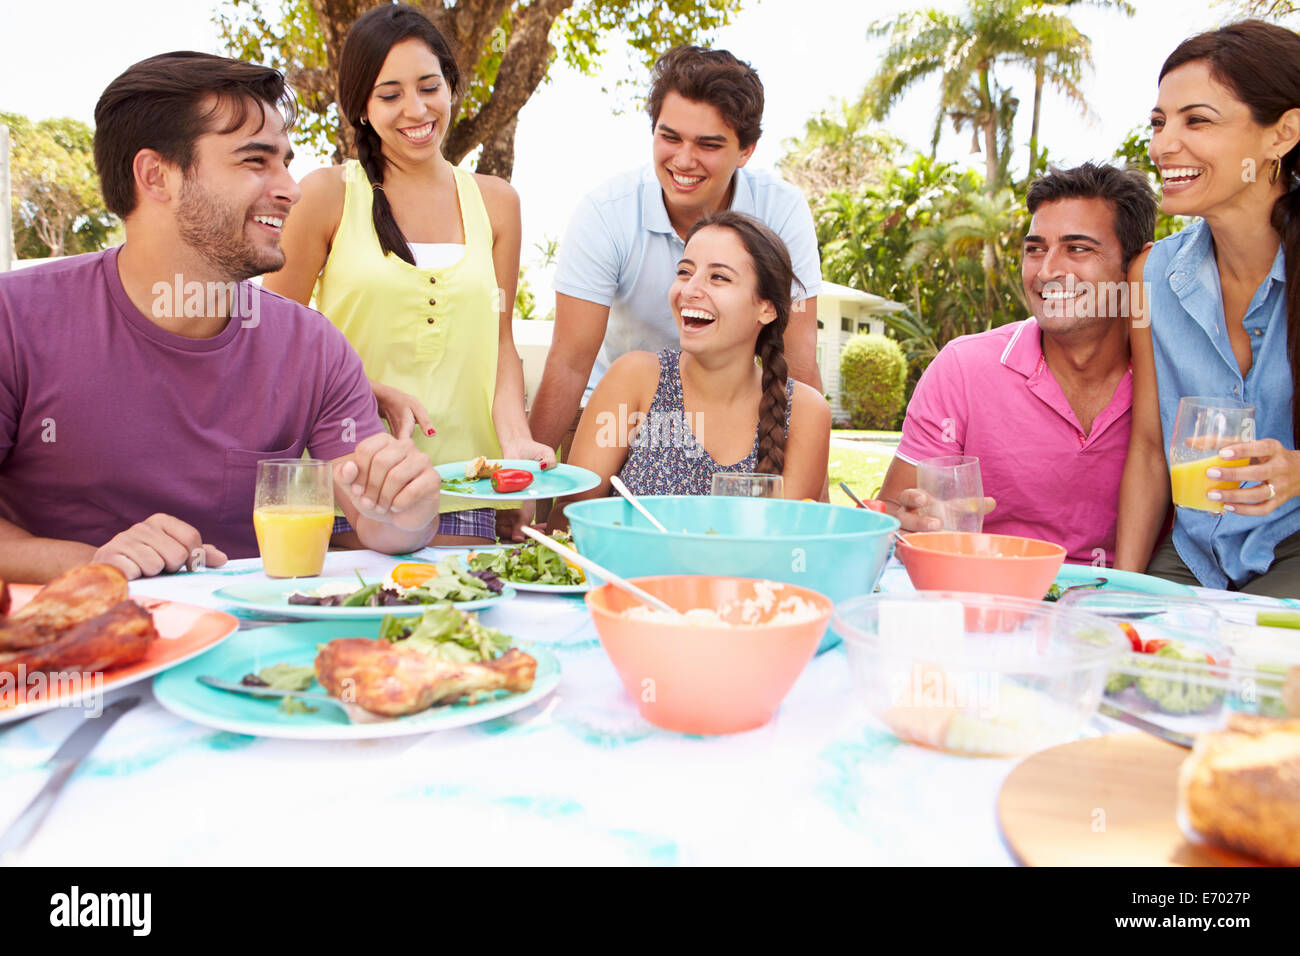 Group Of Friends Celebrating Enjoying Meal In Garden At Home - Stock Image